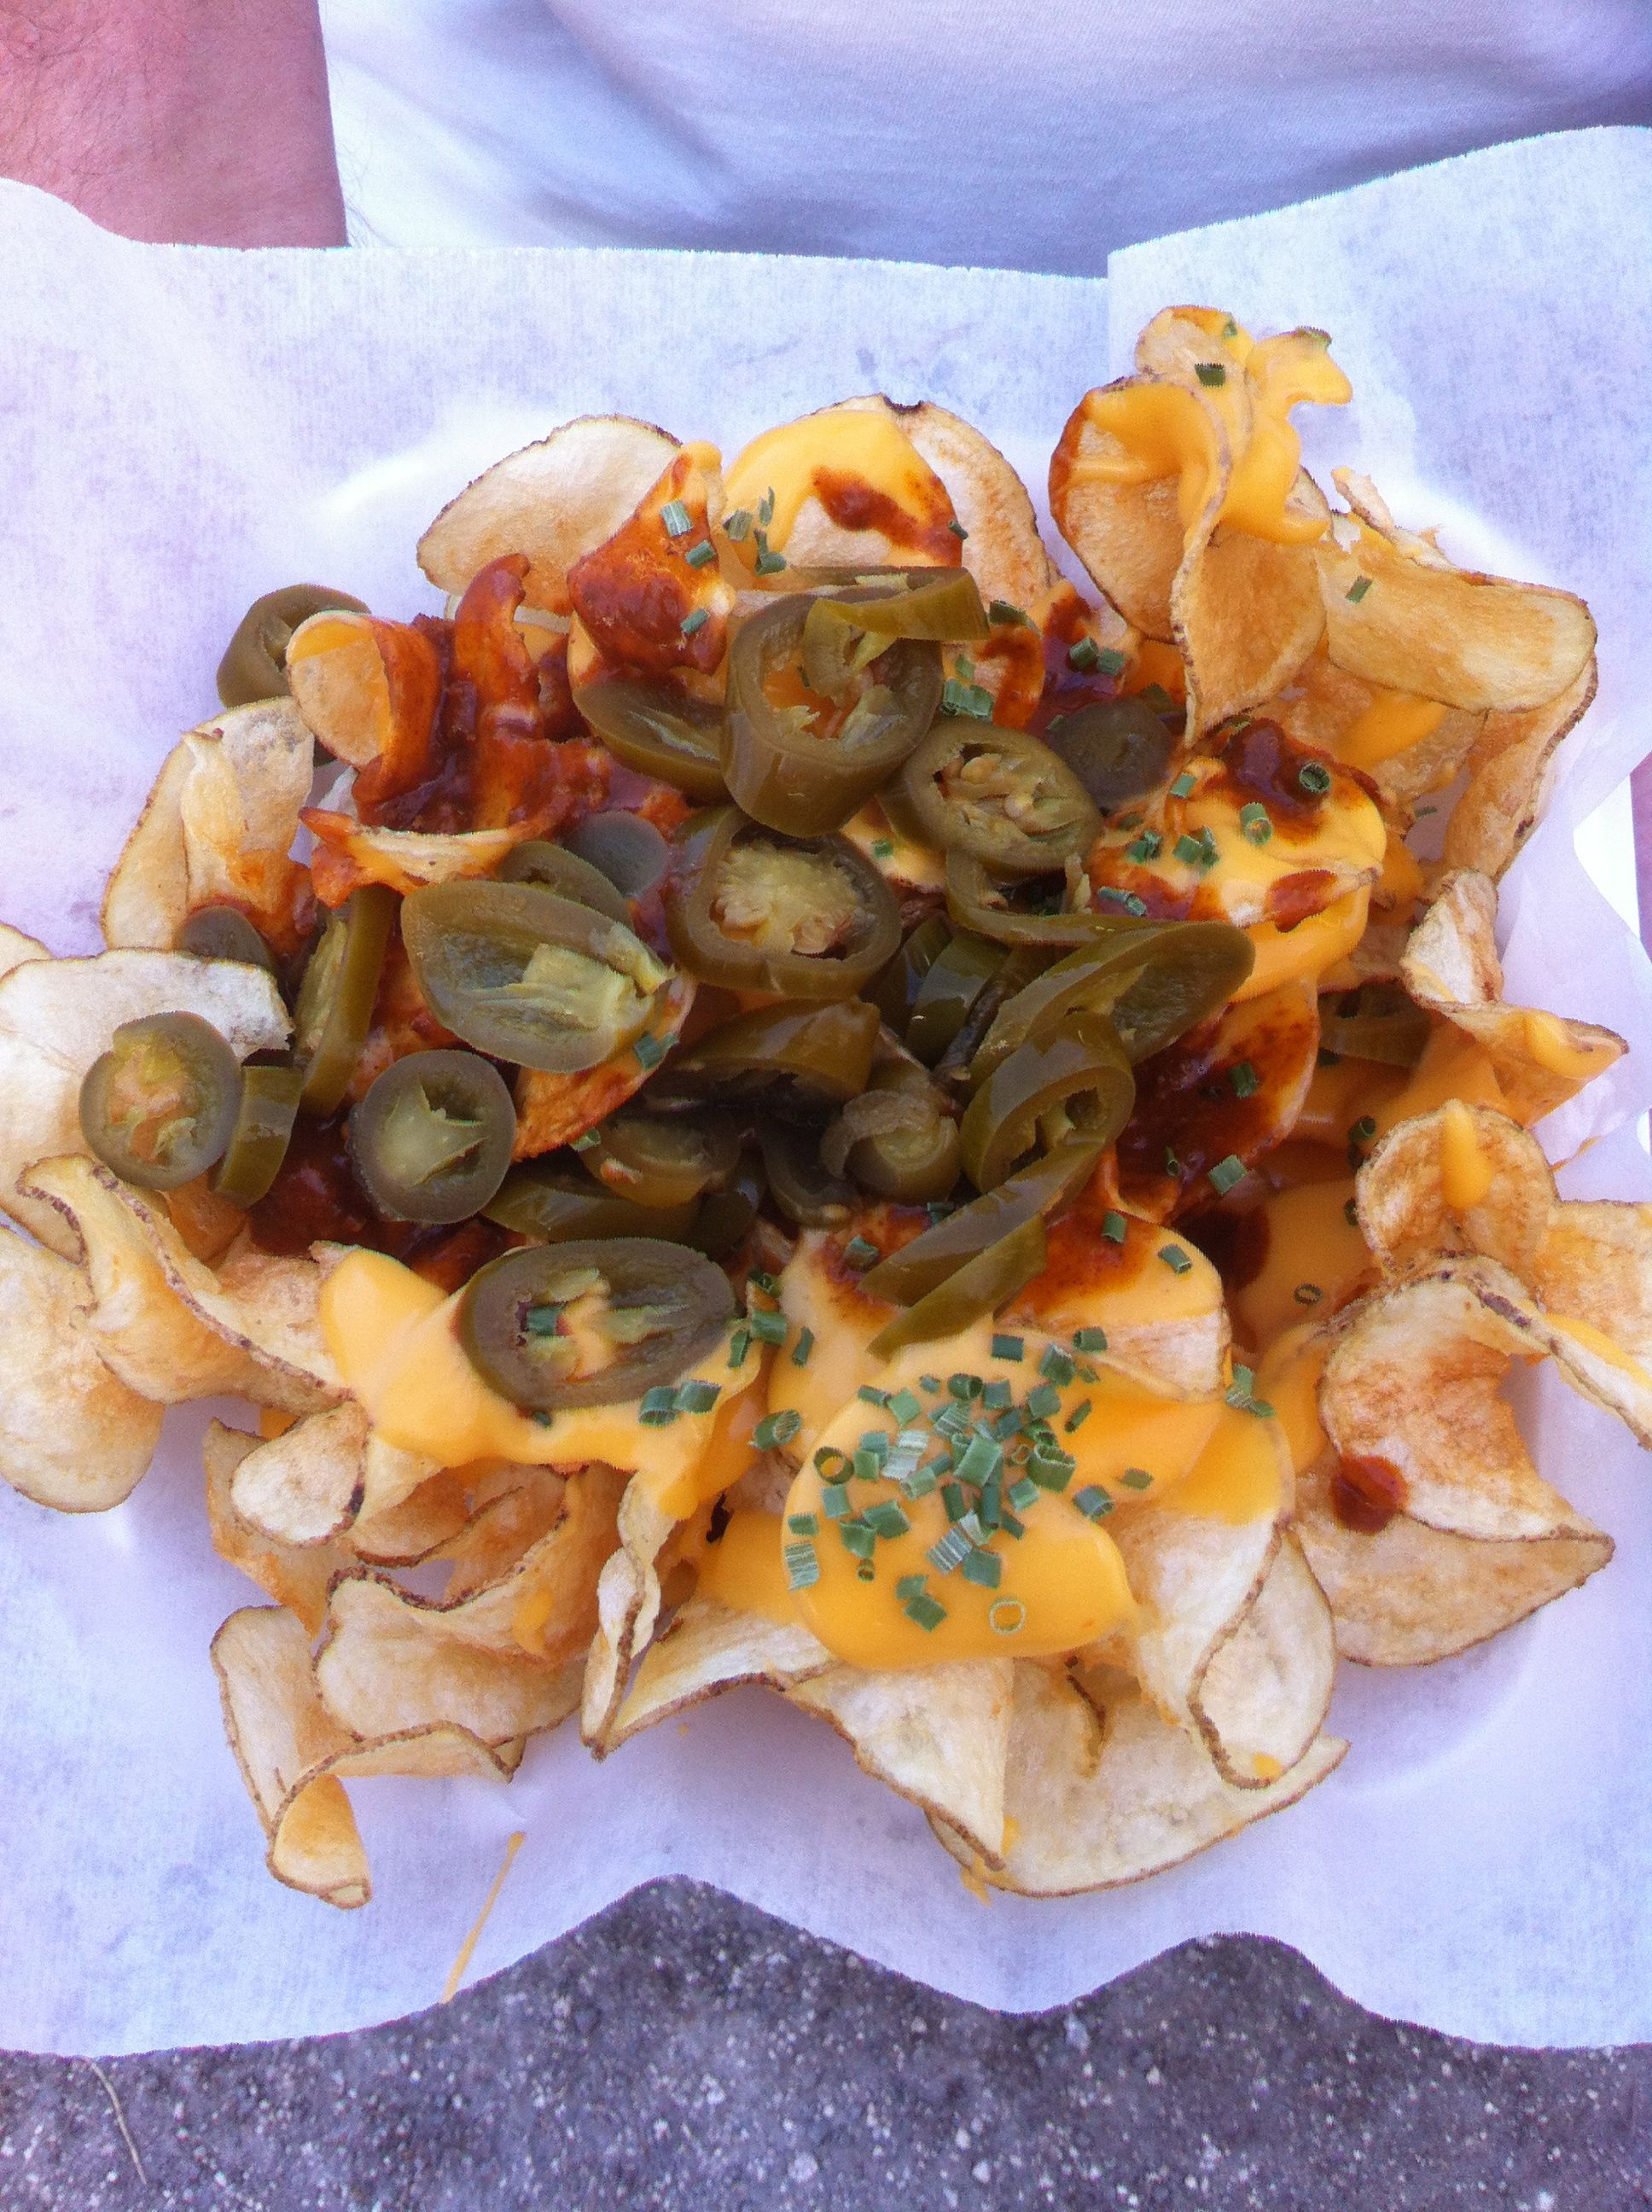 Loaded Ribbon Fries From Strawberry Festival Plant City Fl Carnival FoodBusiness IdeasRibbonPotato